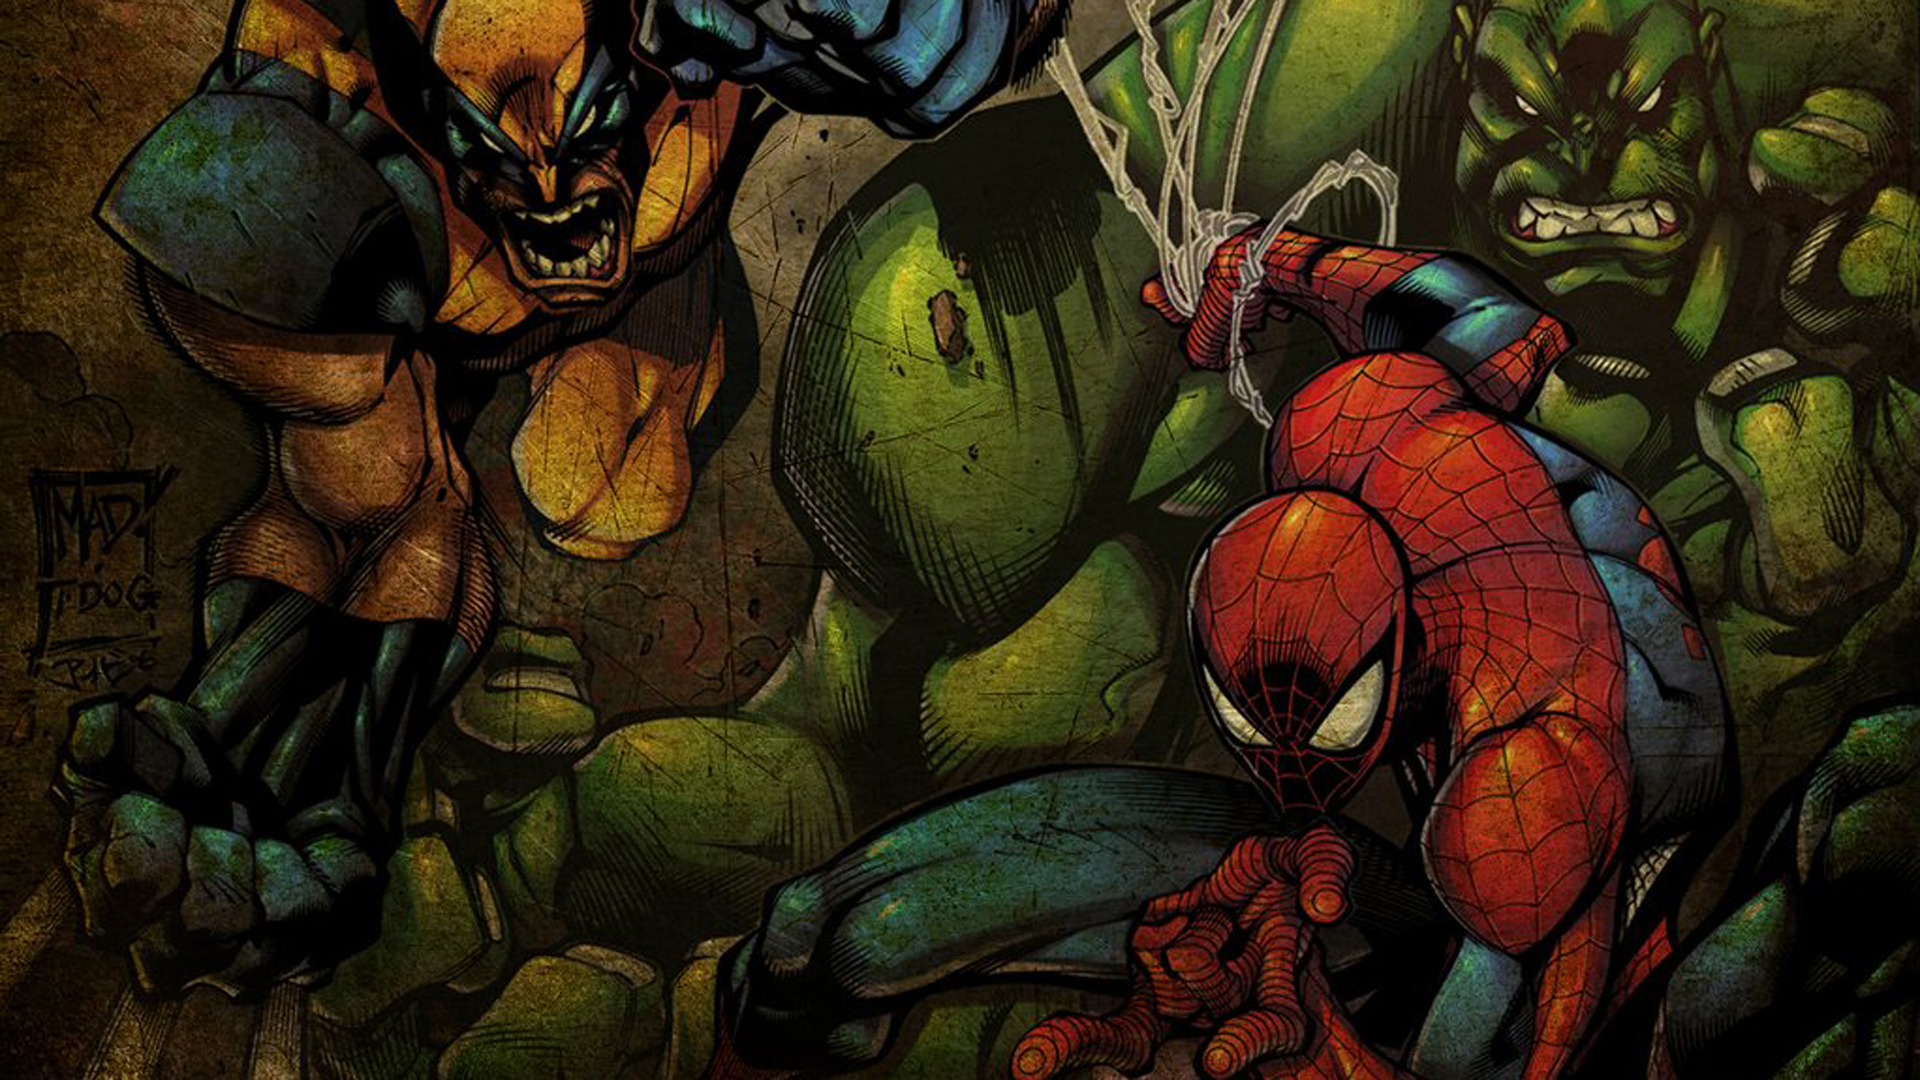 Spidy,wolverine_and_hulk_Wallpaper_6sx951.jpg